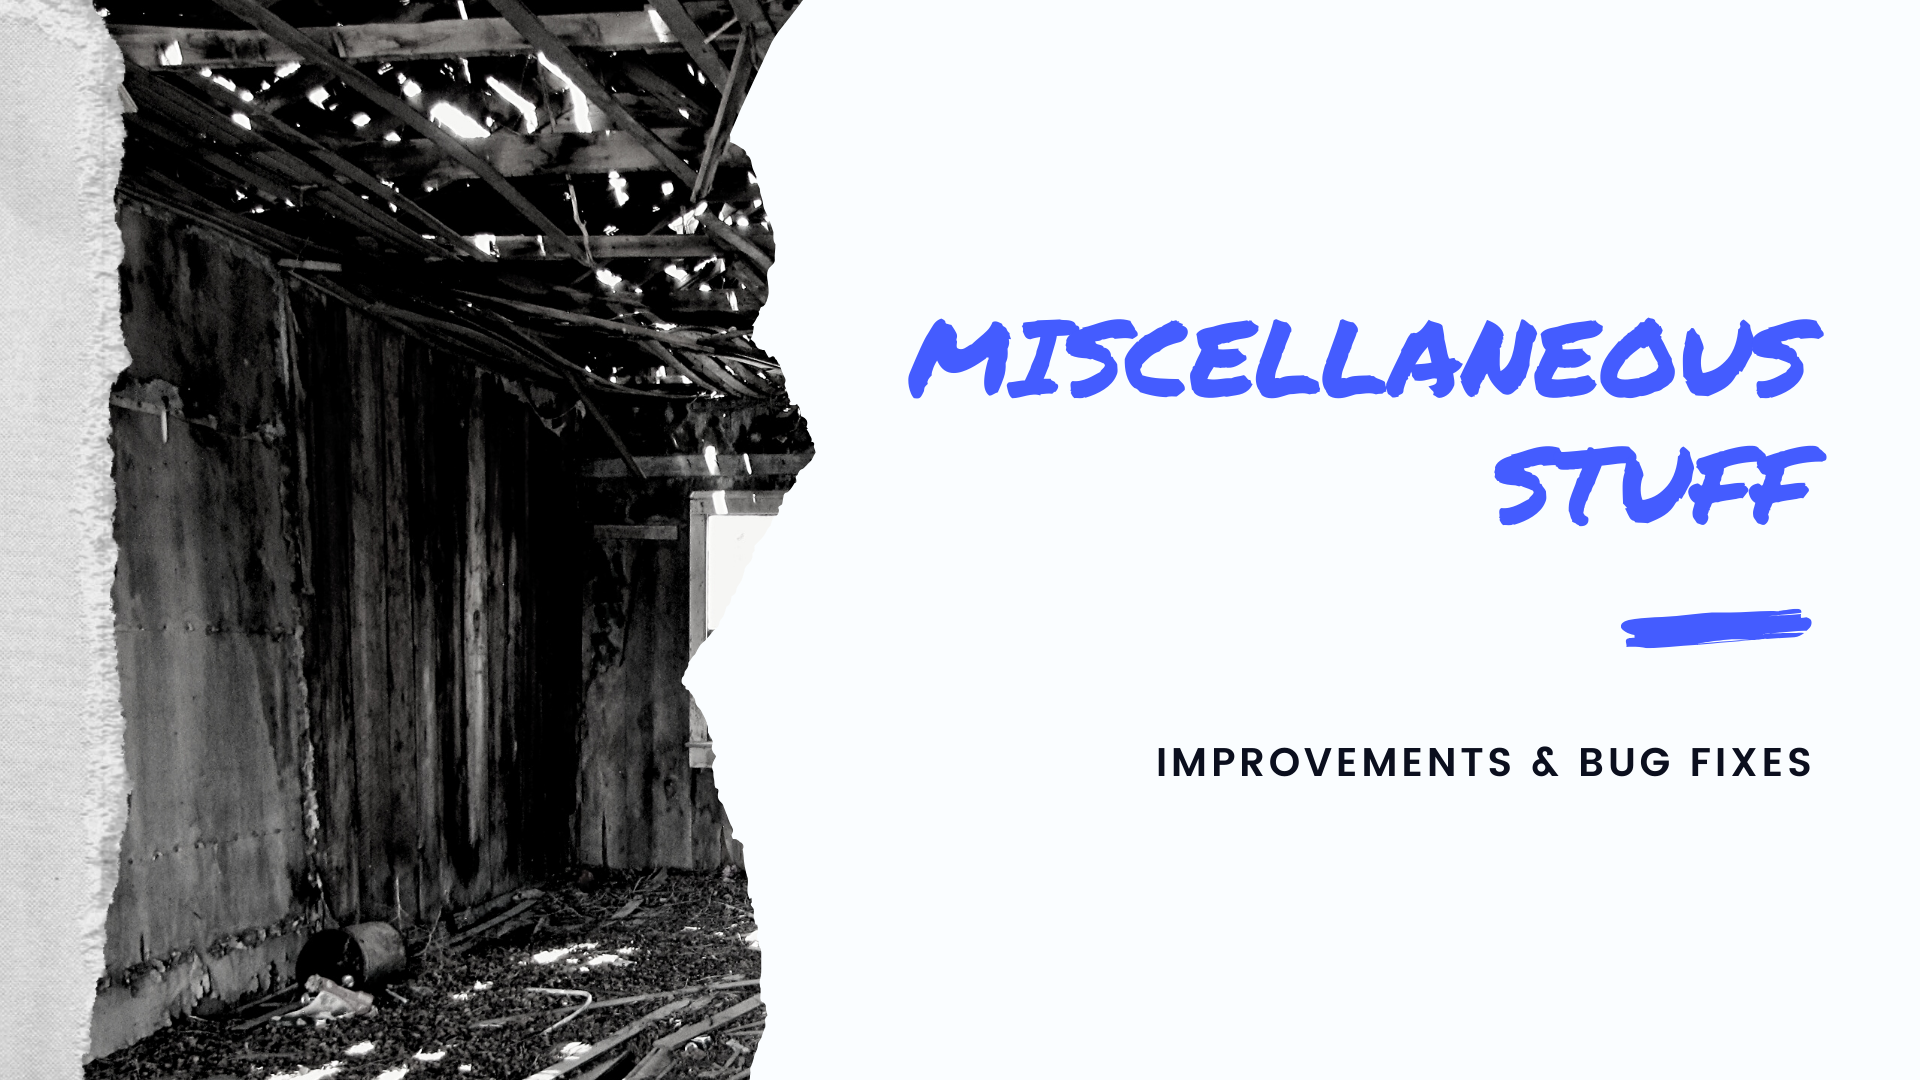 Miscellaneous Improvements & Bug Fixes